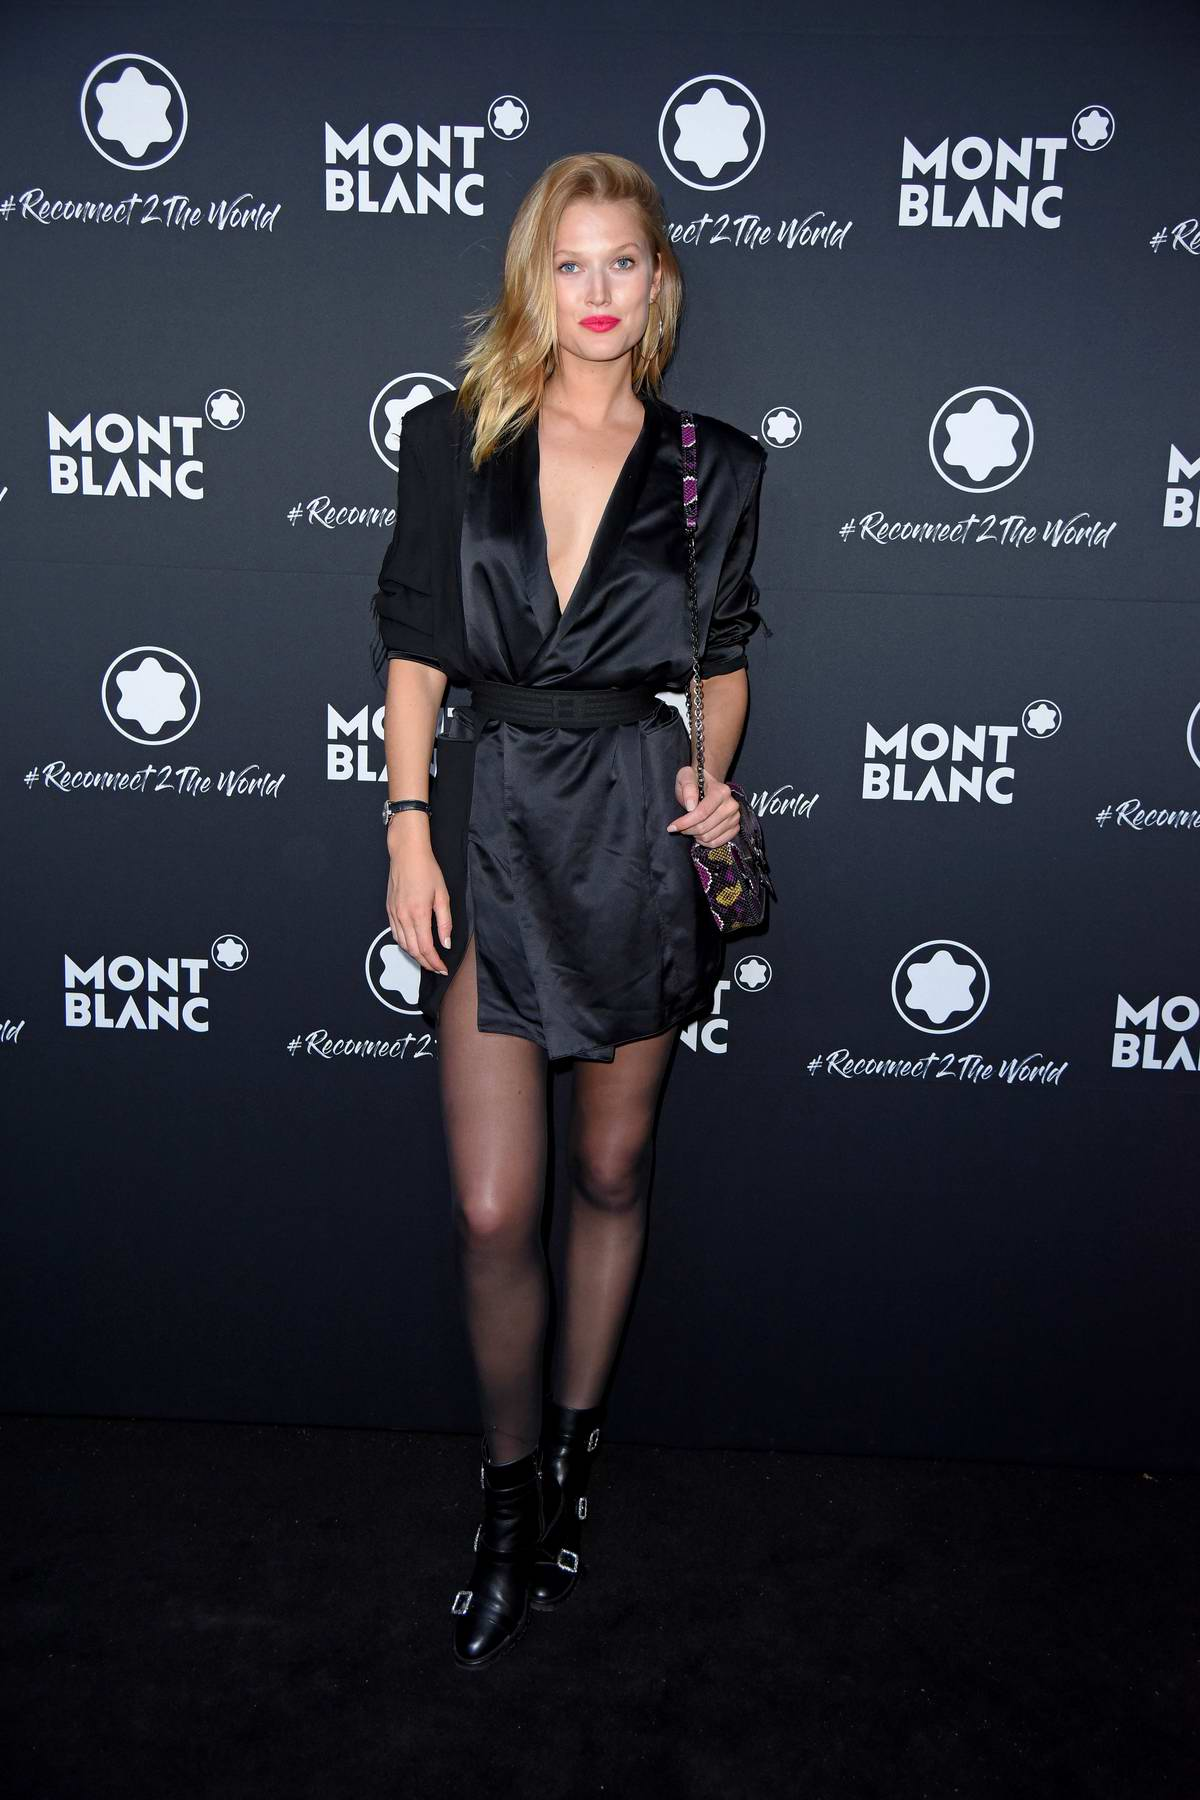 Toni Garrn attends Montblanc #Reconnect 2 The World Party at Metropol-Theater in Berlin-Mitte, Berlin, Germany